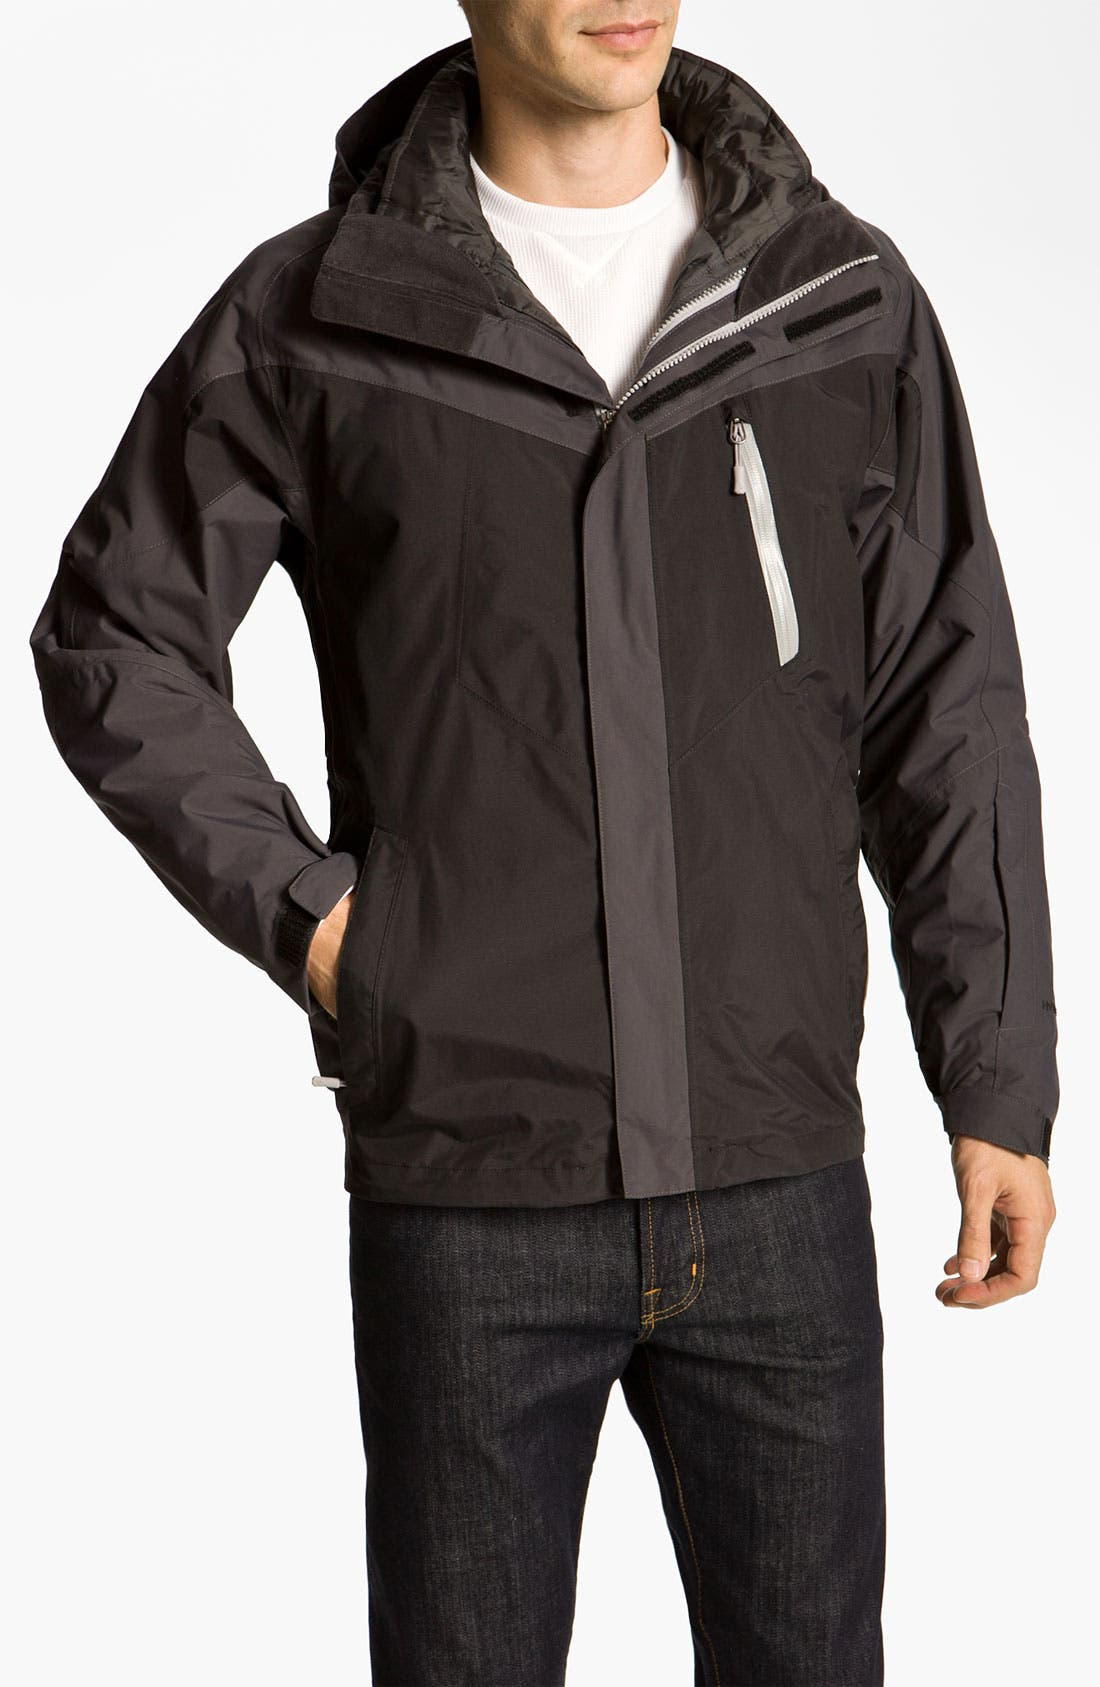 Alternate Image 1 Selected - The North Face 'Headwall' TriClimate® 3-in-1 Jacket